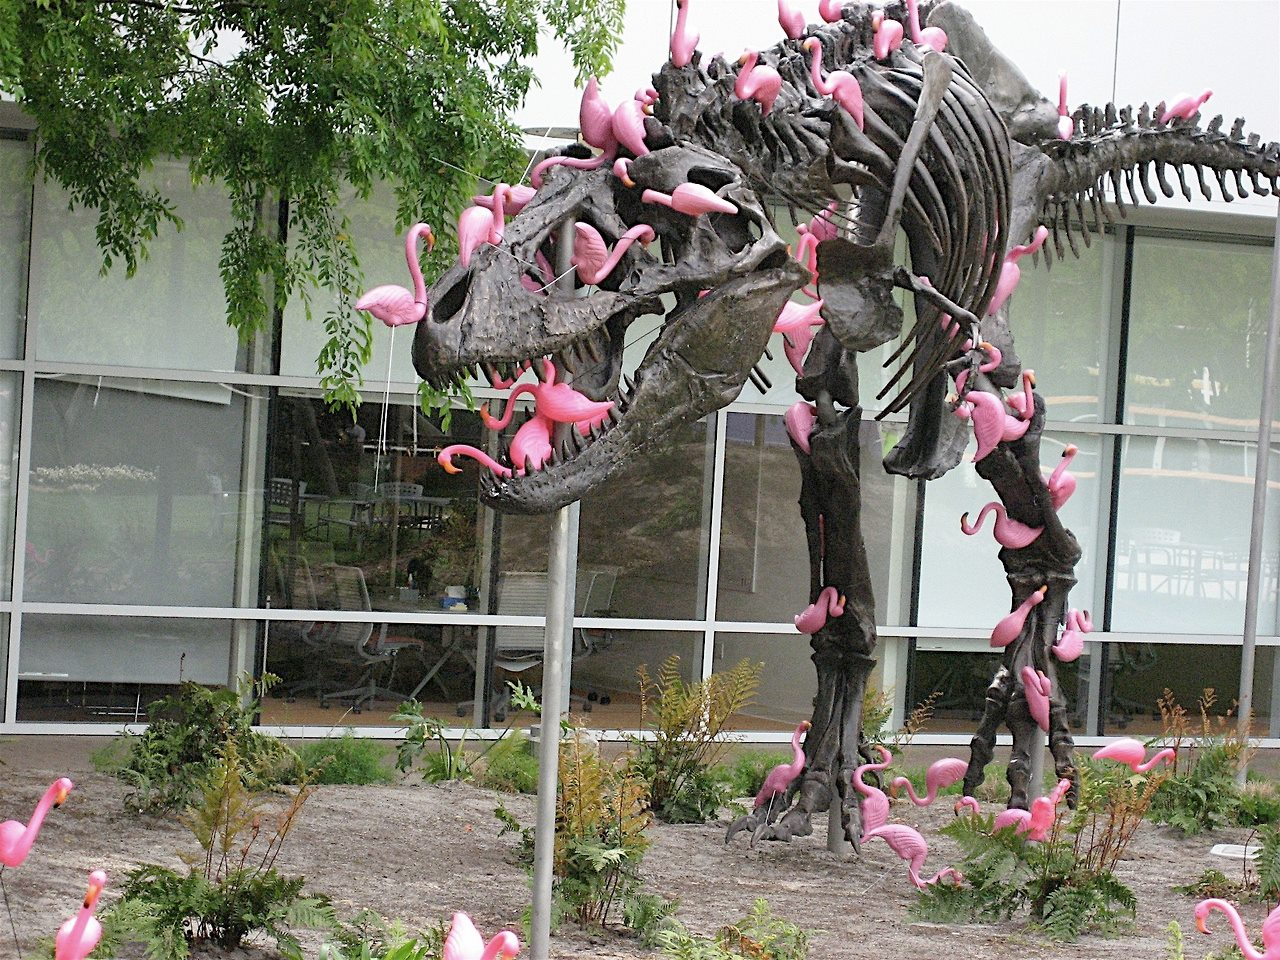 google-campus-dinosaur-attack-flamingos-1